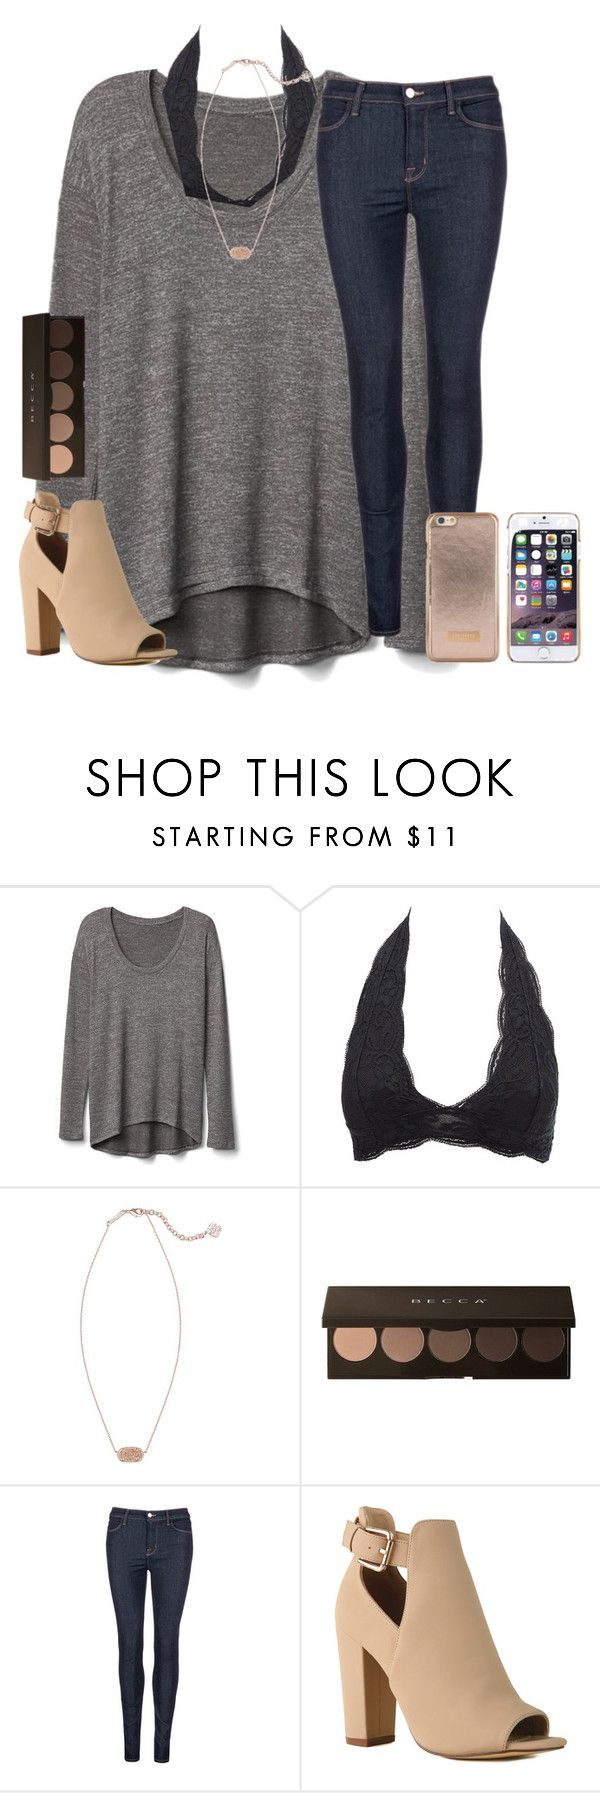 """""""12/13/16"""" by emmagracejoness ❤ liked on Polyvore featuring Gap, Charlotte Russe, Kendra Scott, J Brand and Ted Baker"""